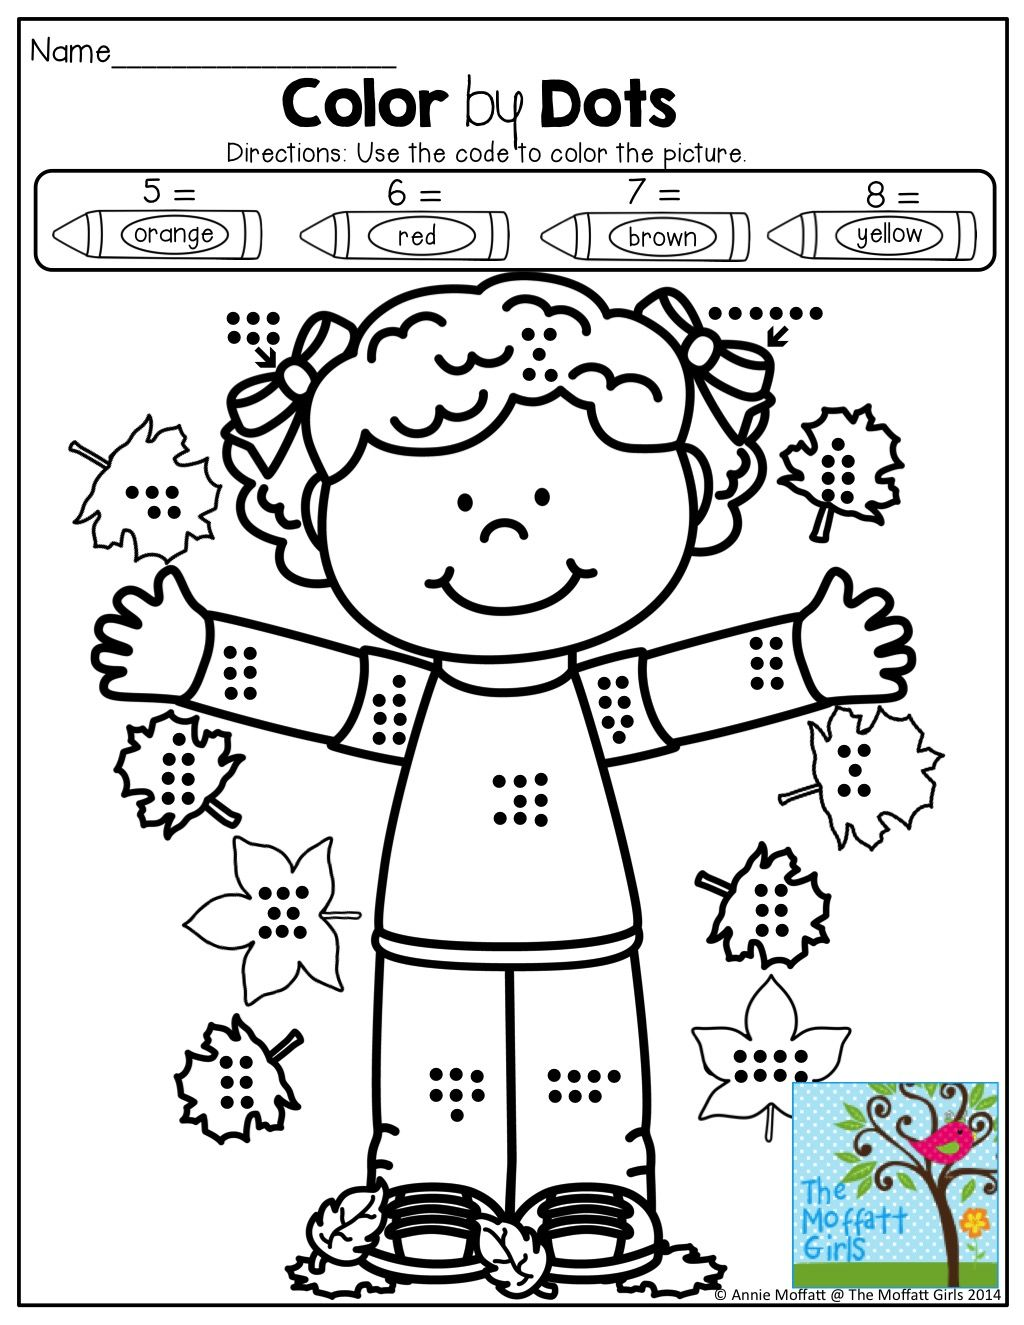 Color By Dots Count The Dots Use The Color Code To Color The Picture Tons Of Great Printables